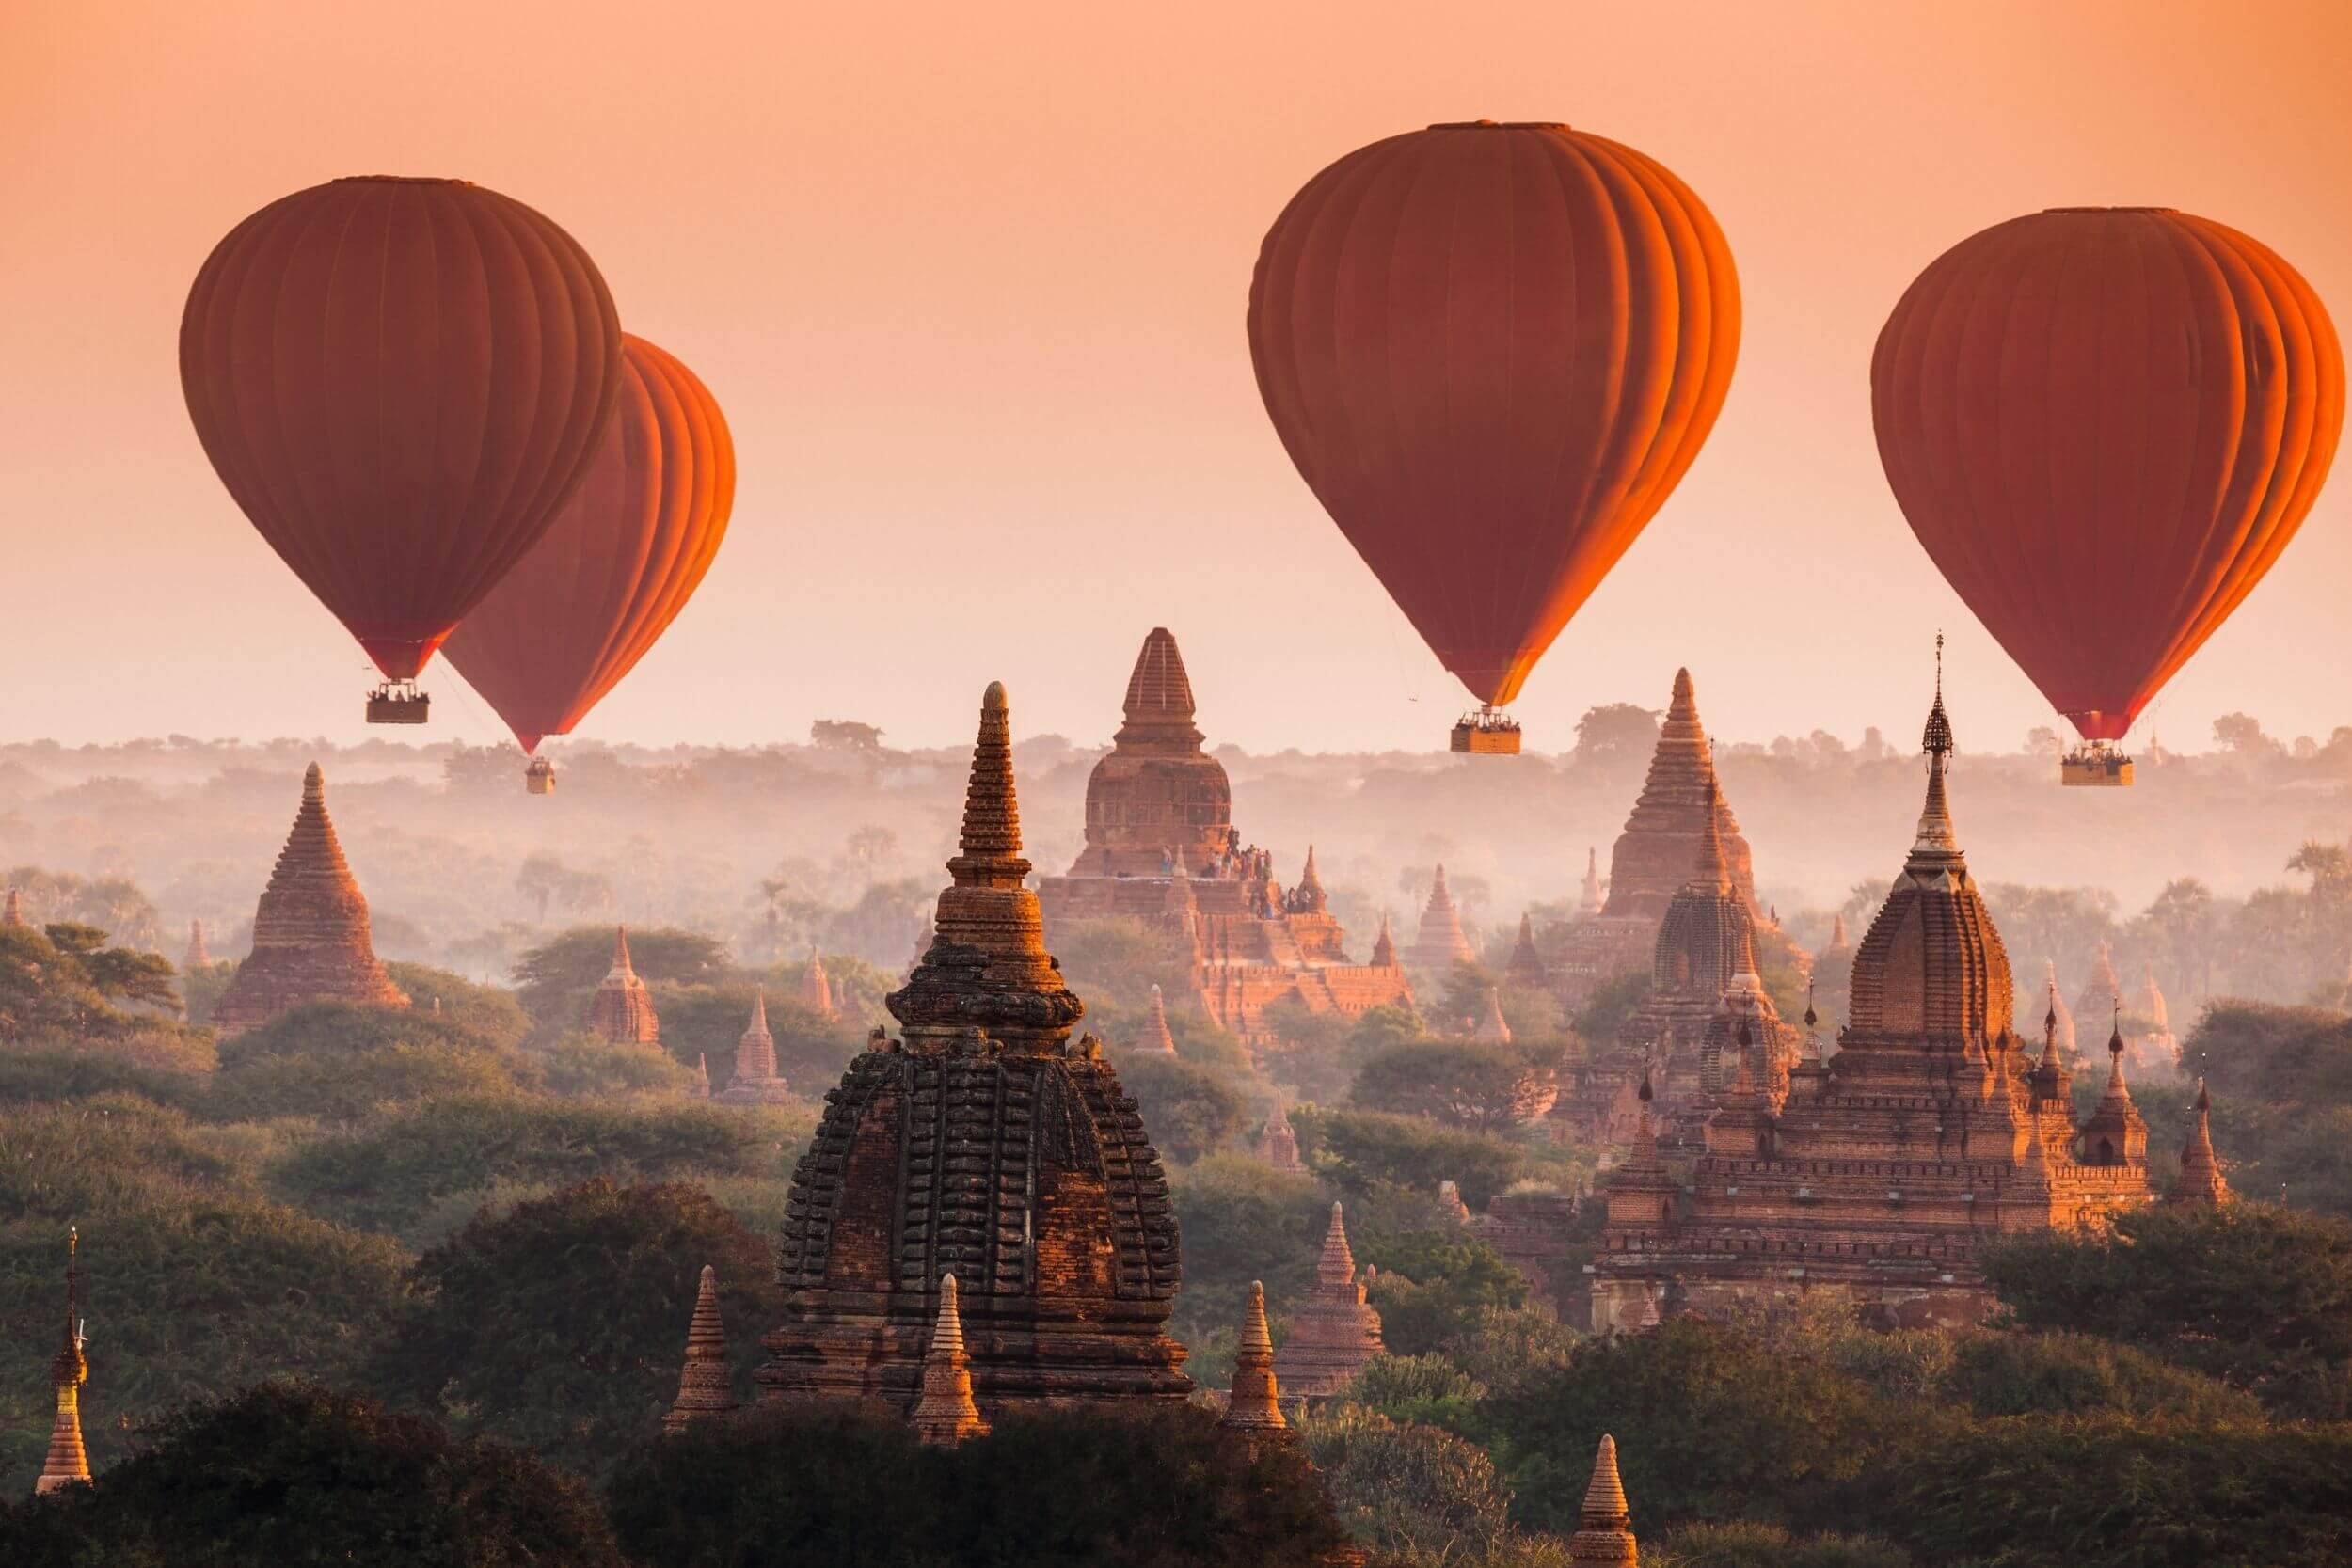 Bagan, Myanmar with hot air balloons floating overhead